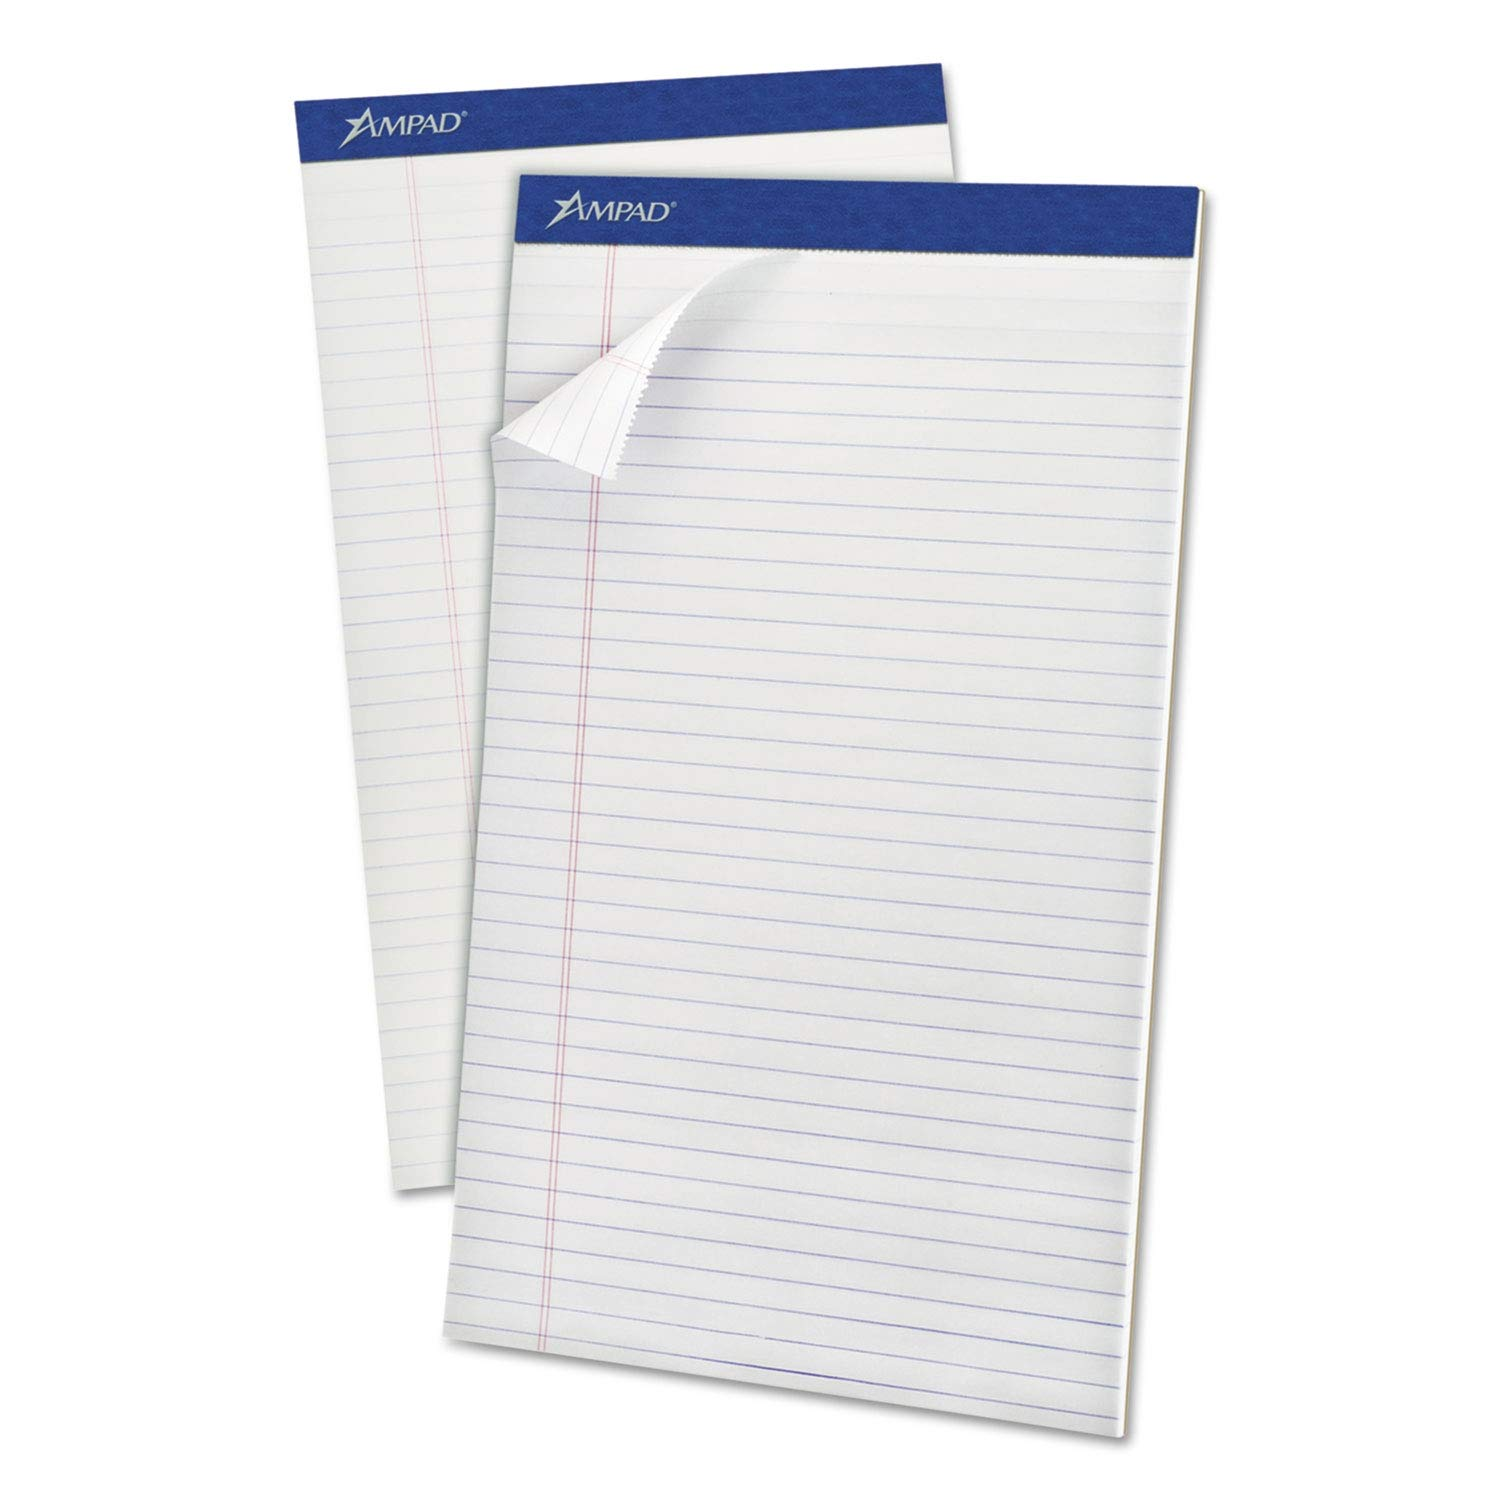 Ampad Perforated Writing Pad, 8 1/2 x 14, White, 50 Sheets, Dozen - 20-330